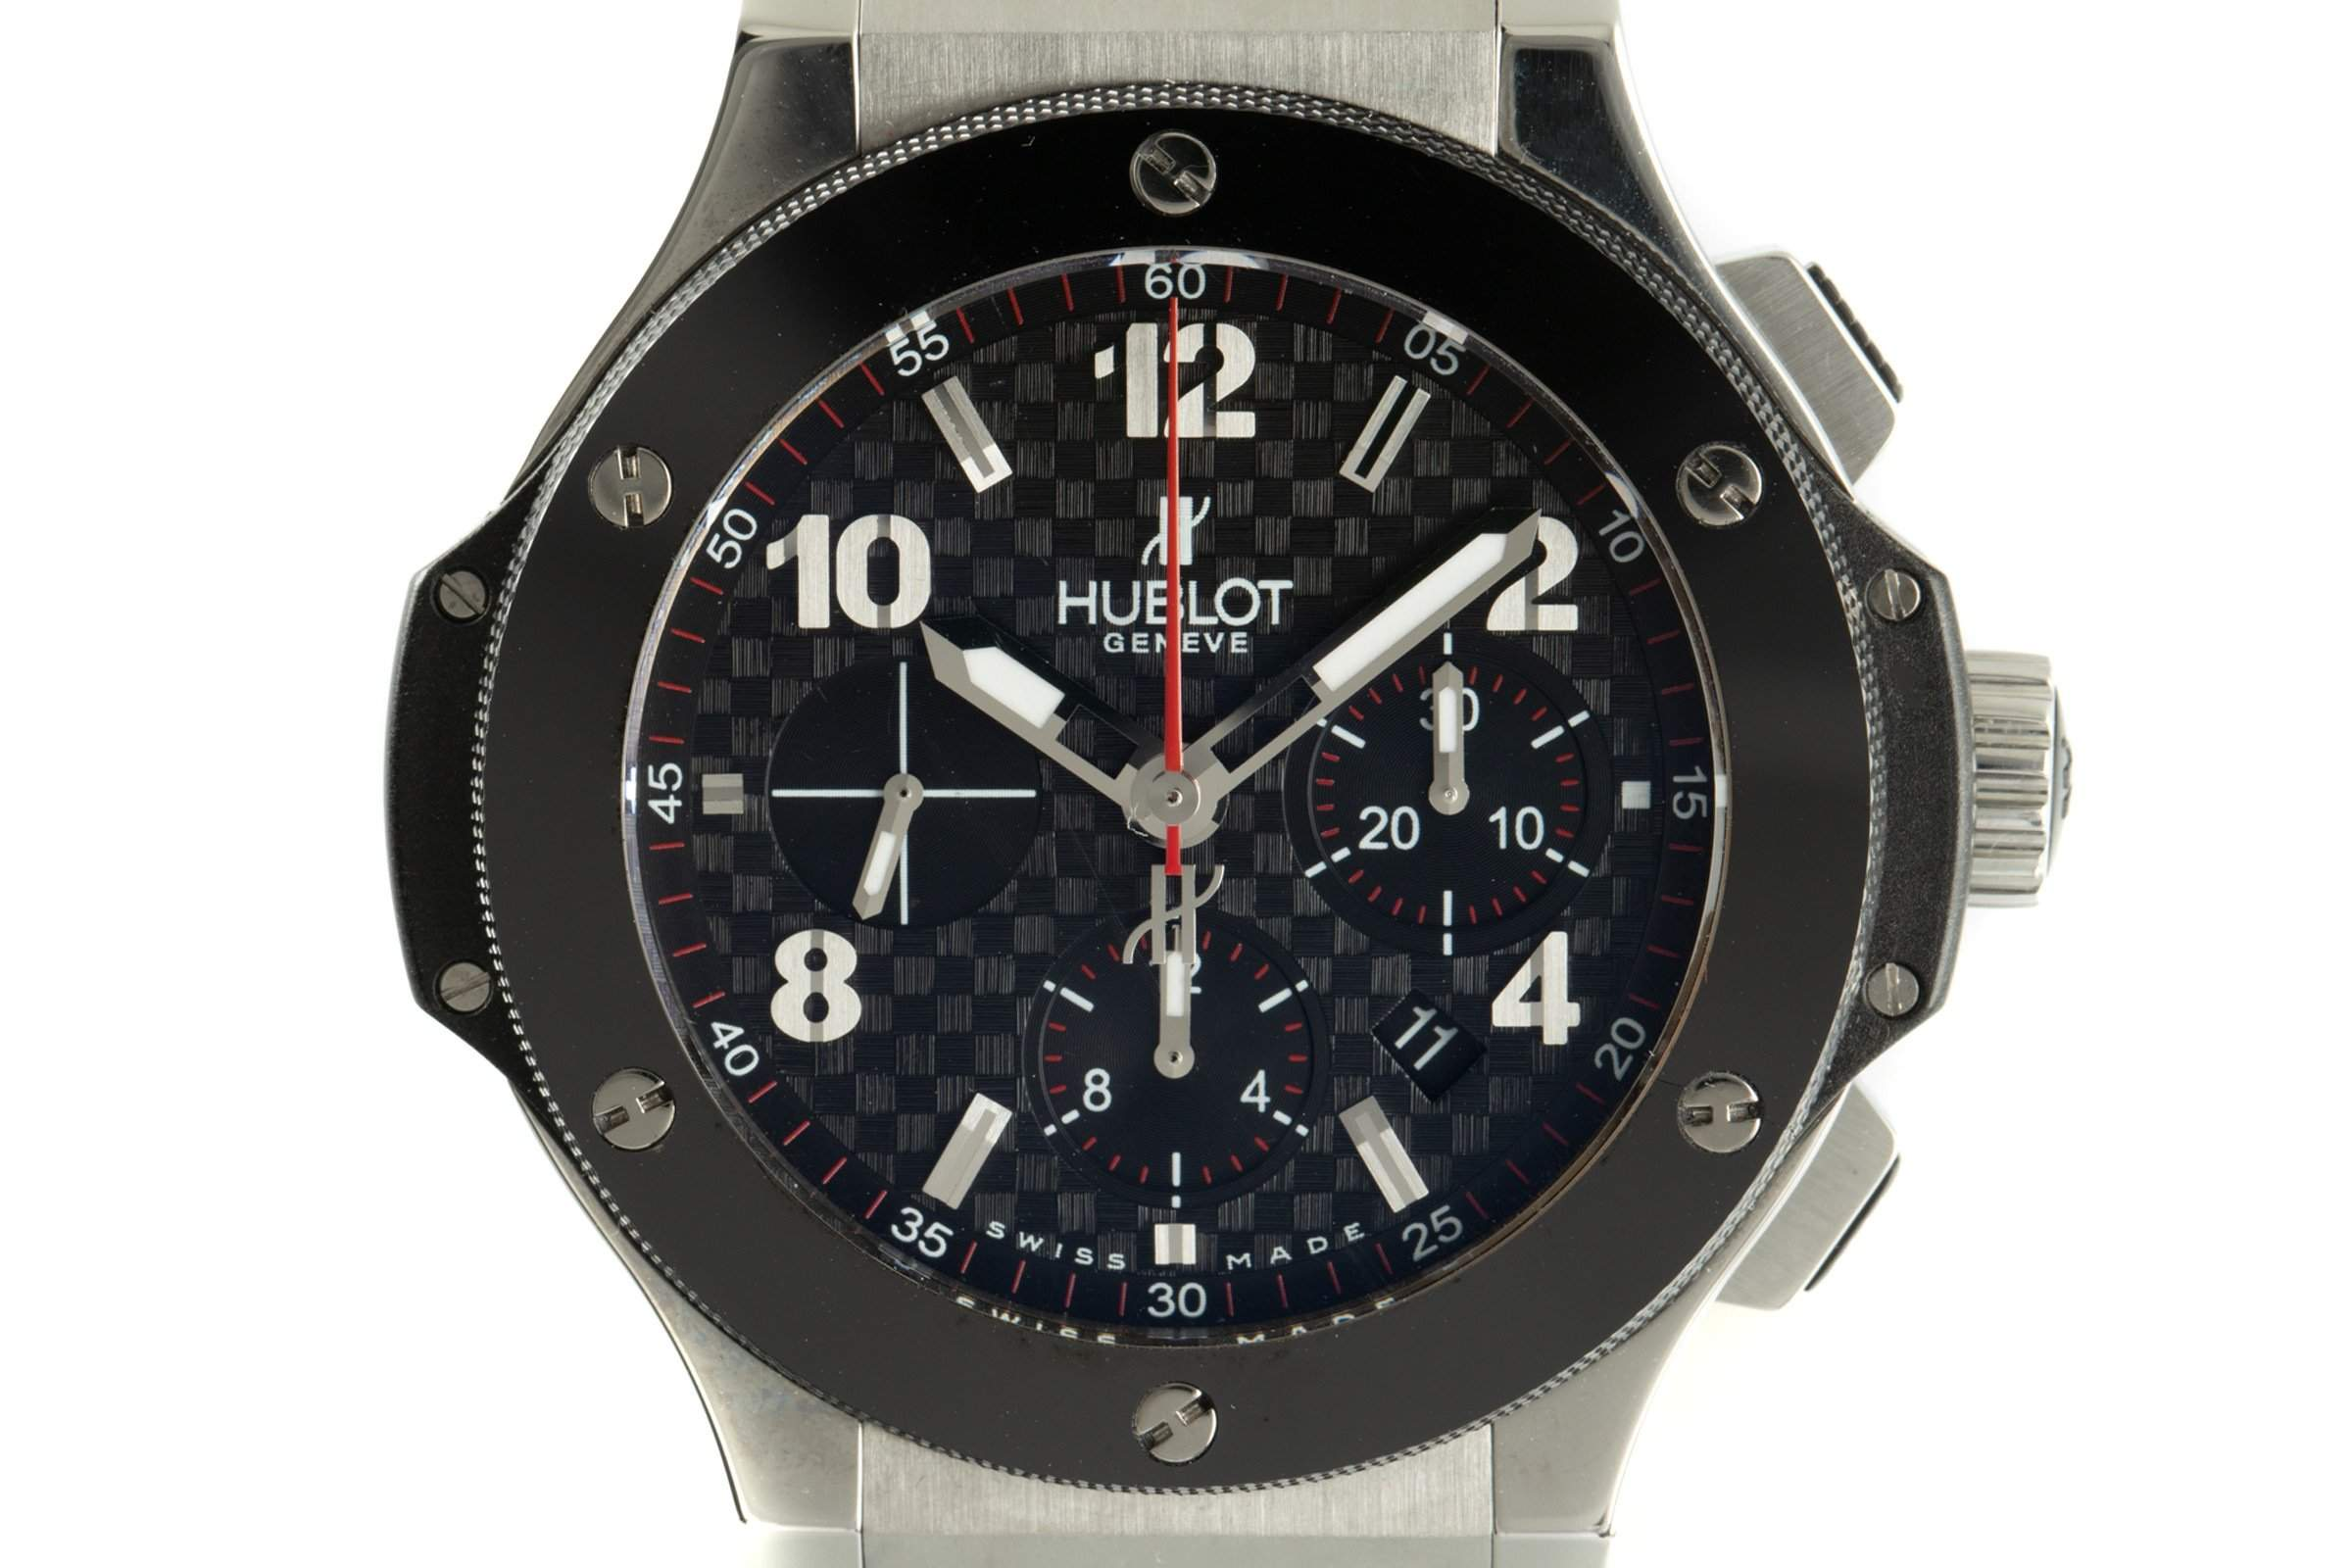 Hublot Big Bang ref. 301.SB.131.RX with a stamped carbon-effect dial